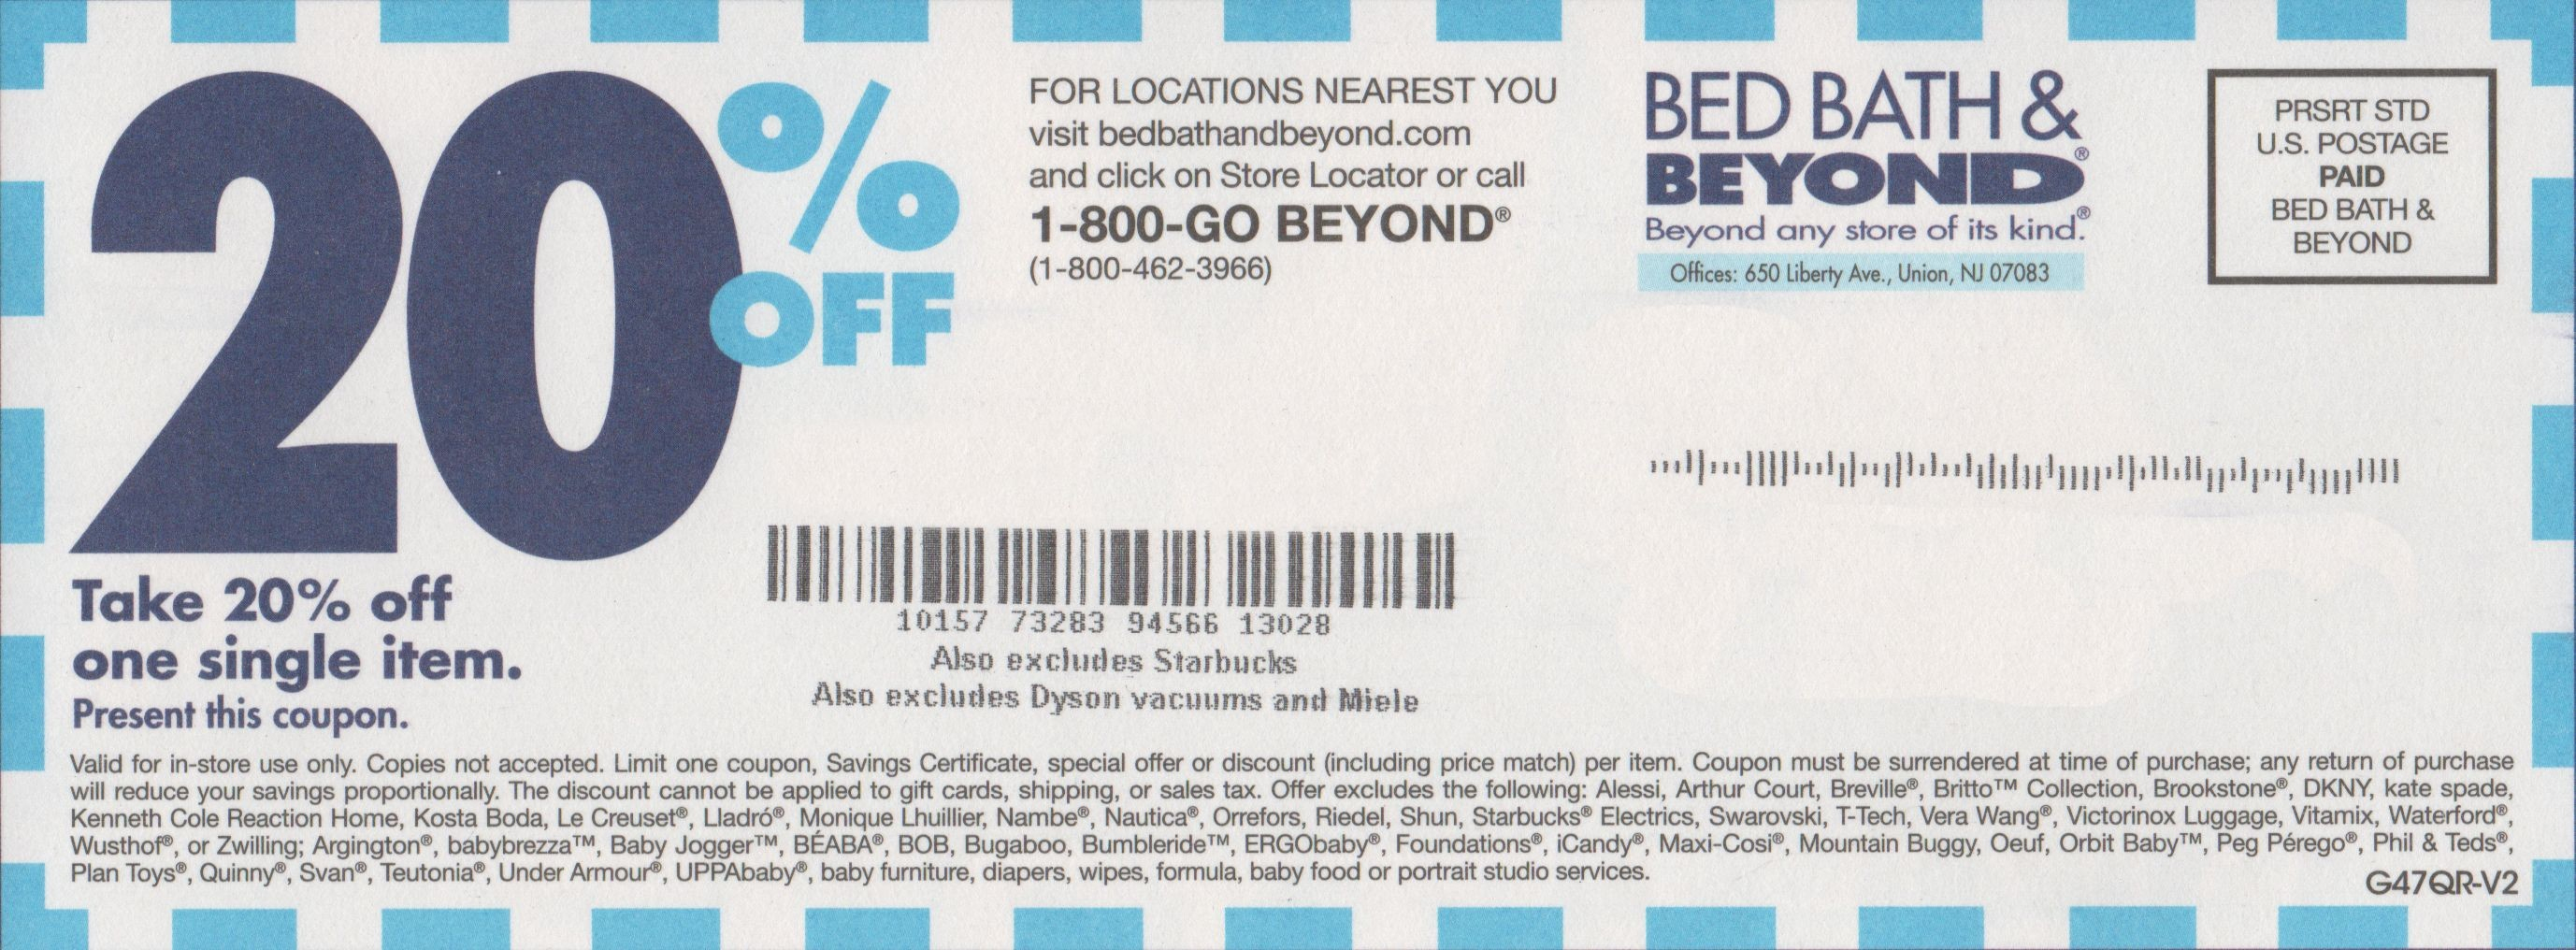 Google Images Bed Bath And Beyond Coupon | Working With Google Docs - Free Printable Bed Bath And Beyond Coupon 2019